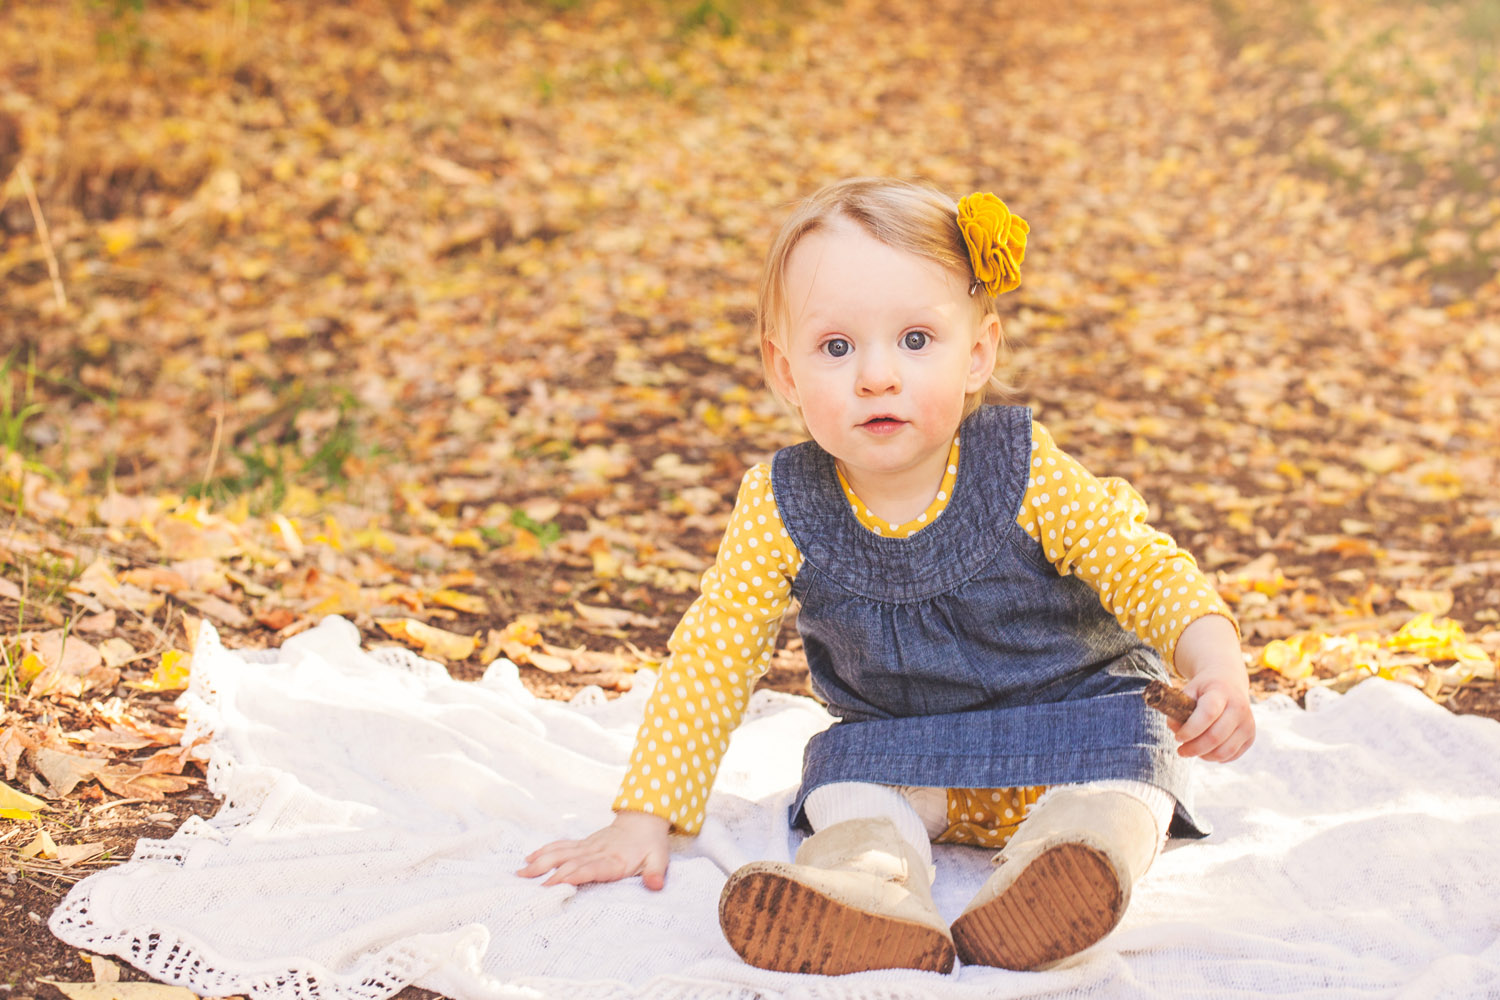 Northern_Utah_Photographer-WatkinsFamilyPhotos-14.jpg